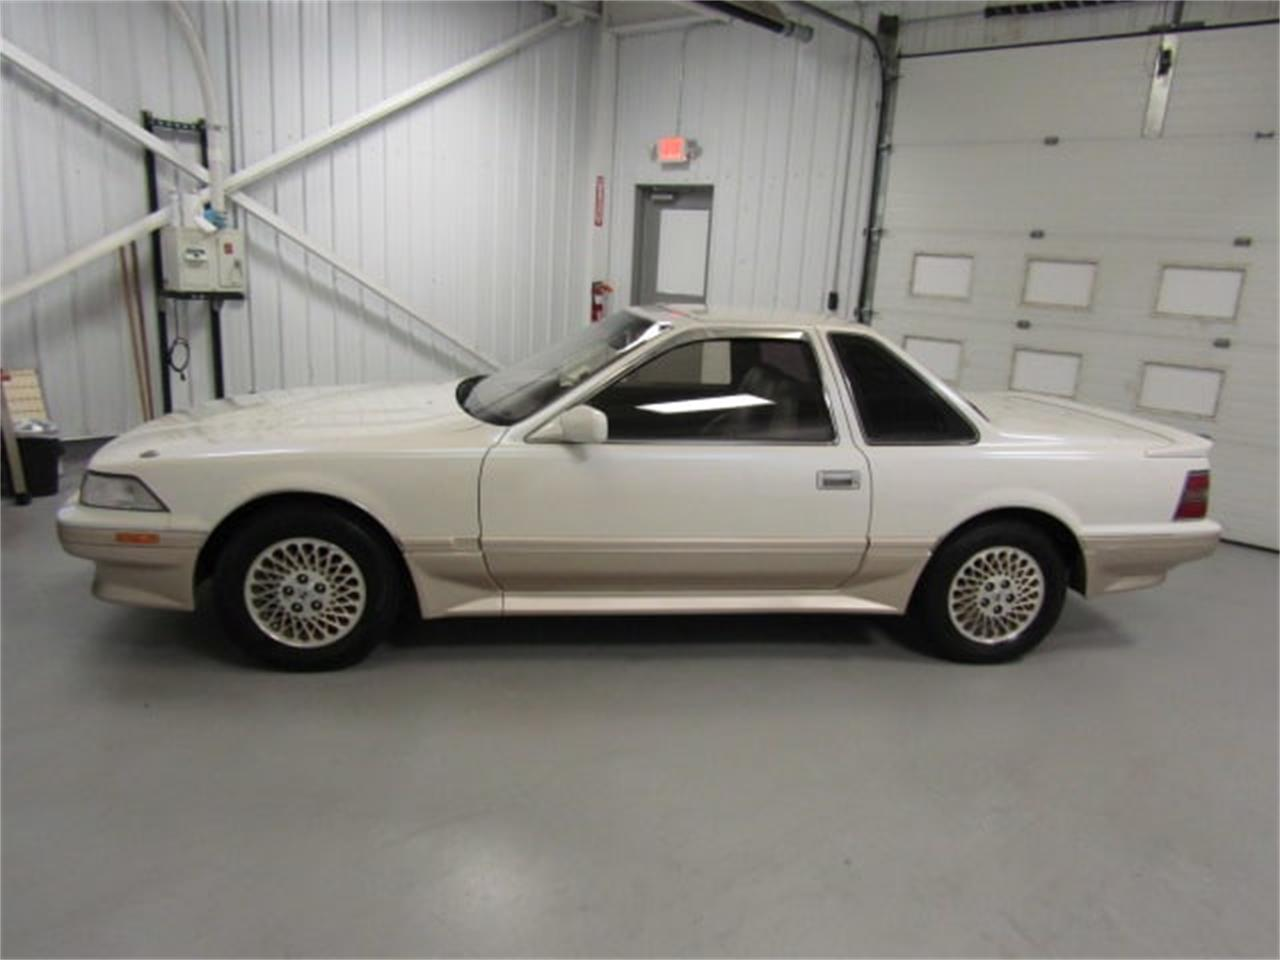 Large Picture of 1989 Toyota Soarer - $12,900.00 Offered by Duncan Imports & Classic Cars - LN7J